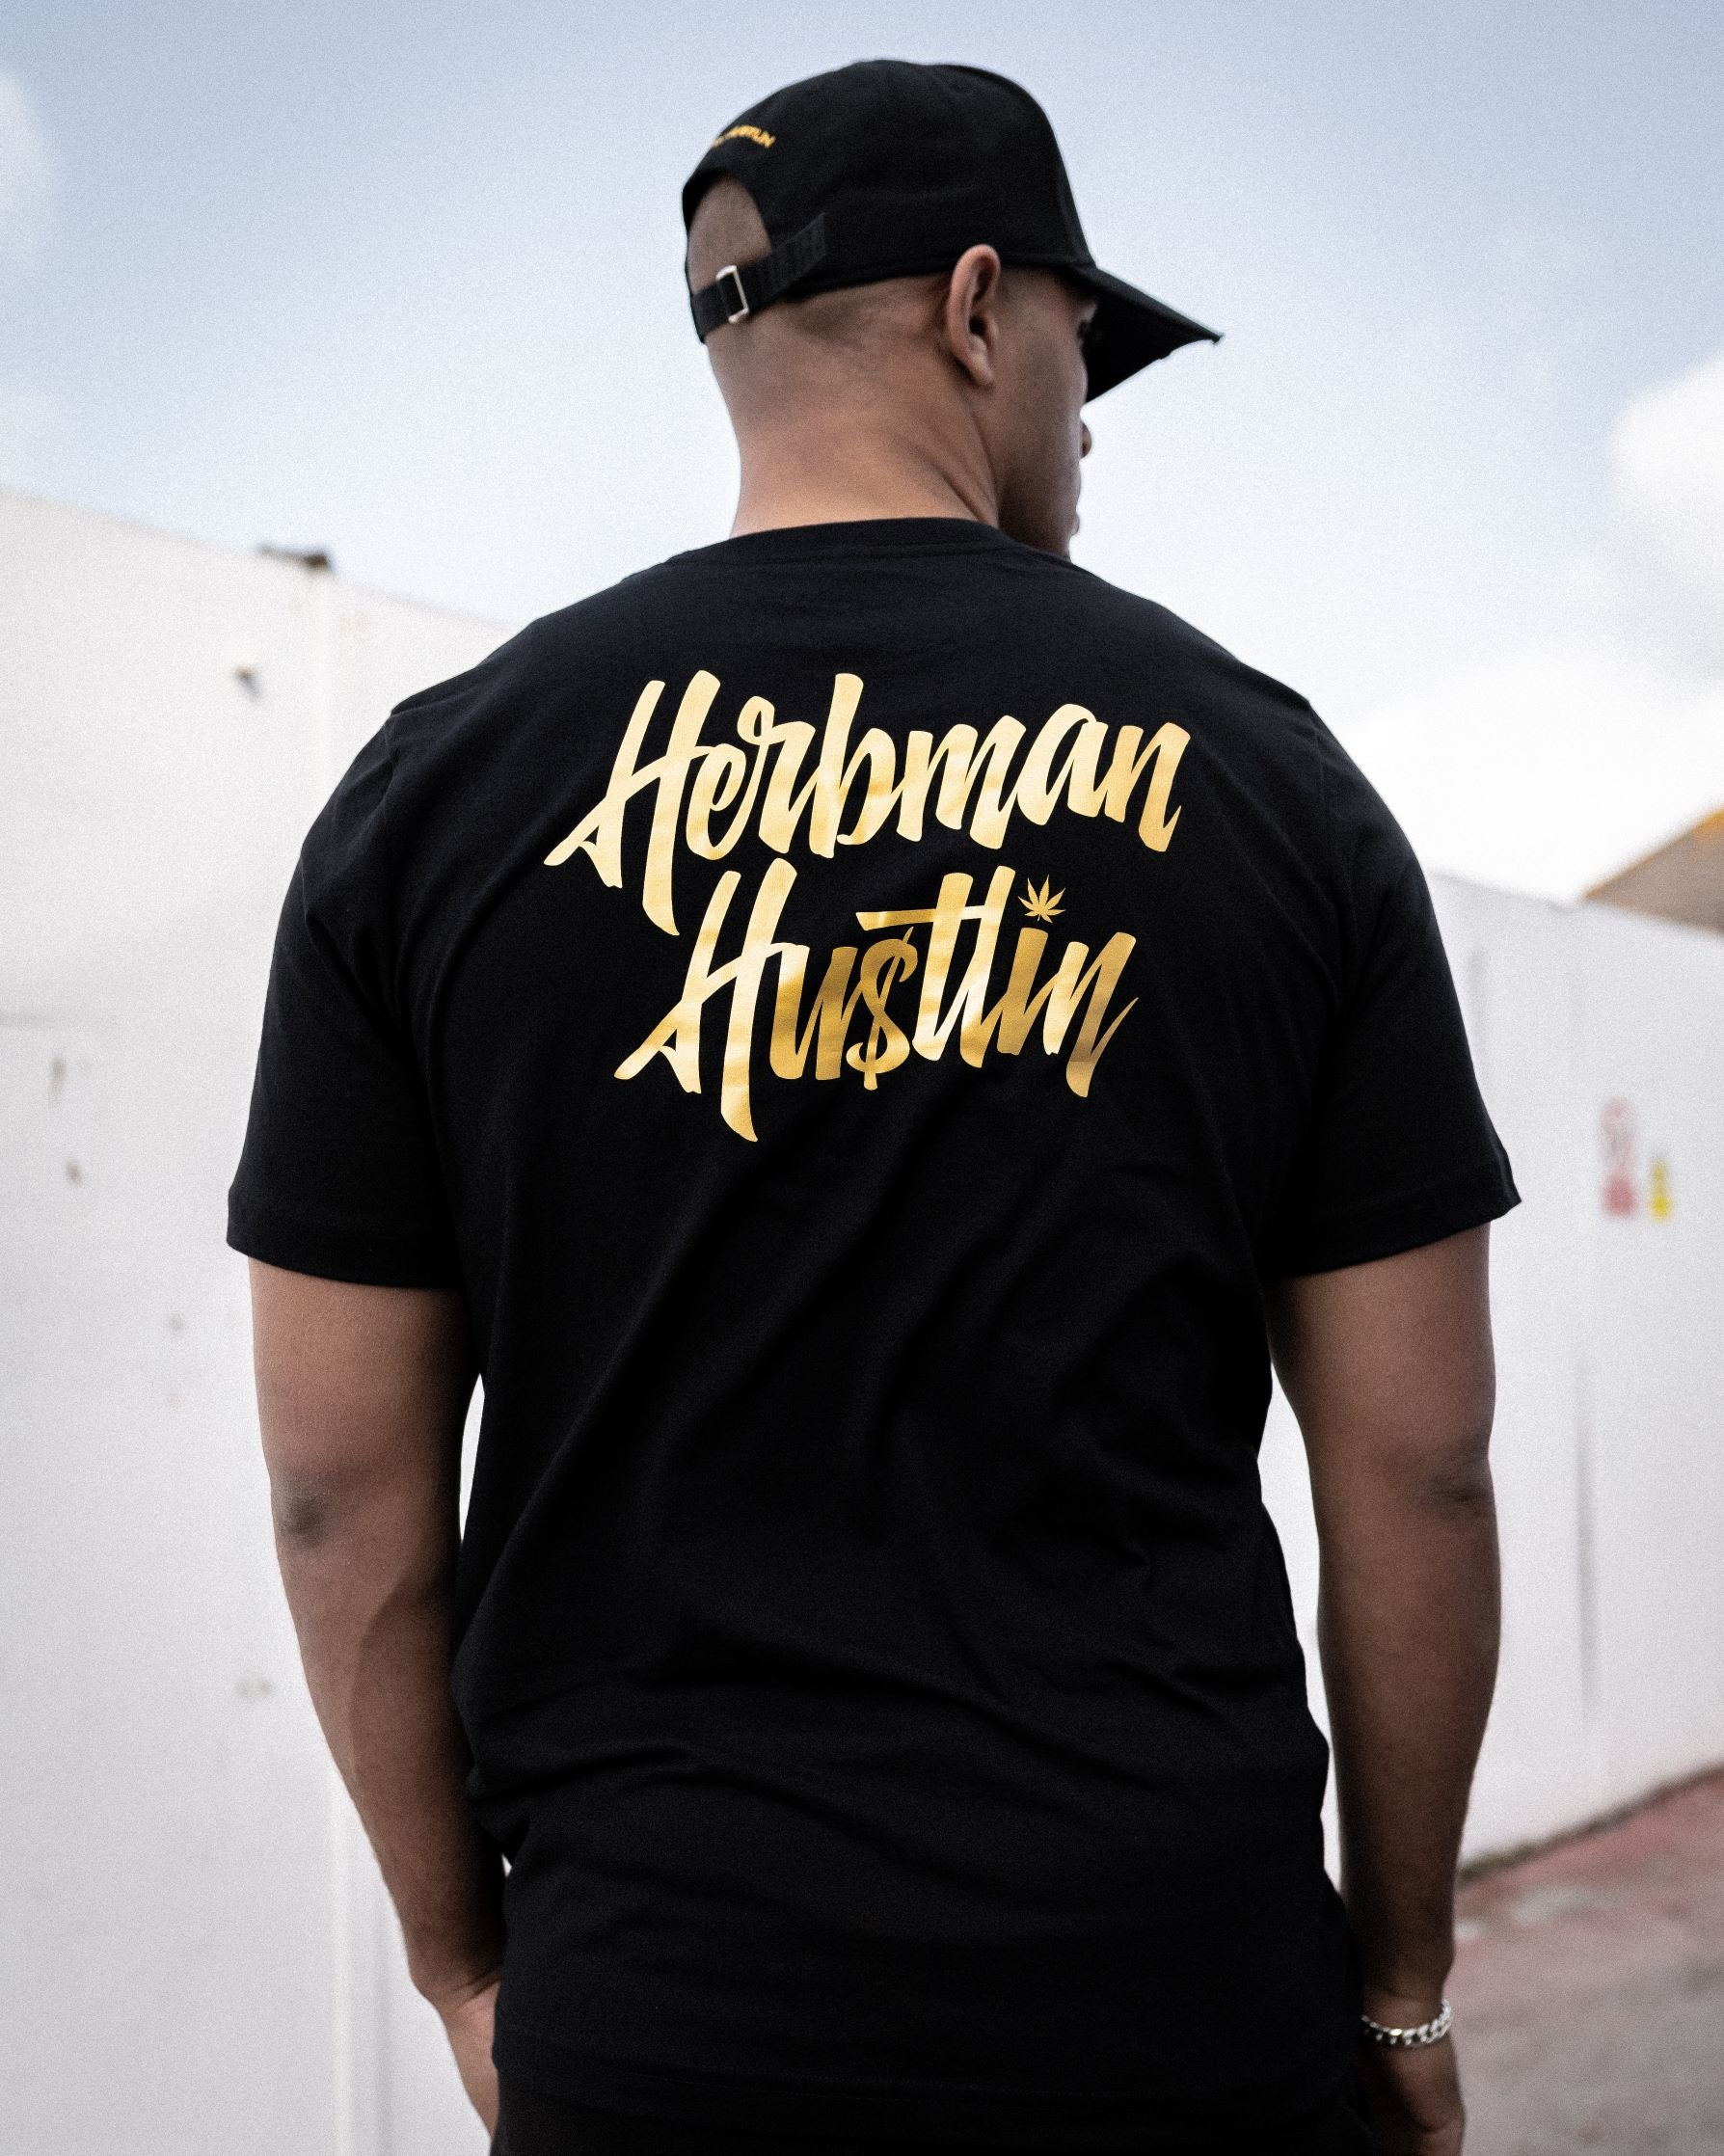 Herbman Hustlin Script Back Print Tee - Black/Gold - Back